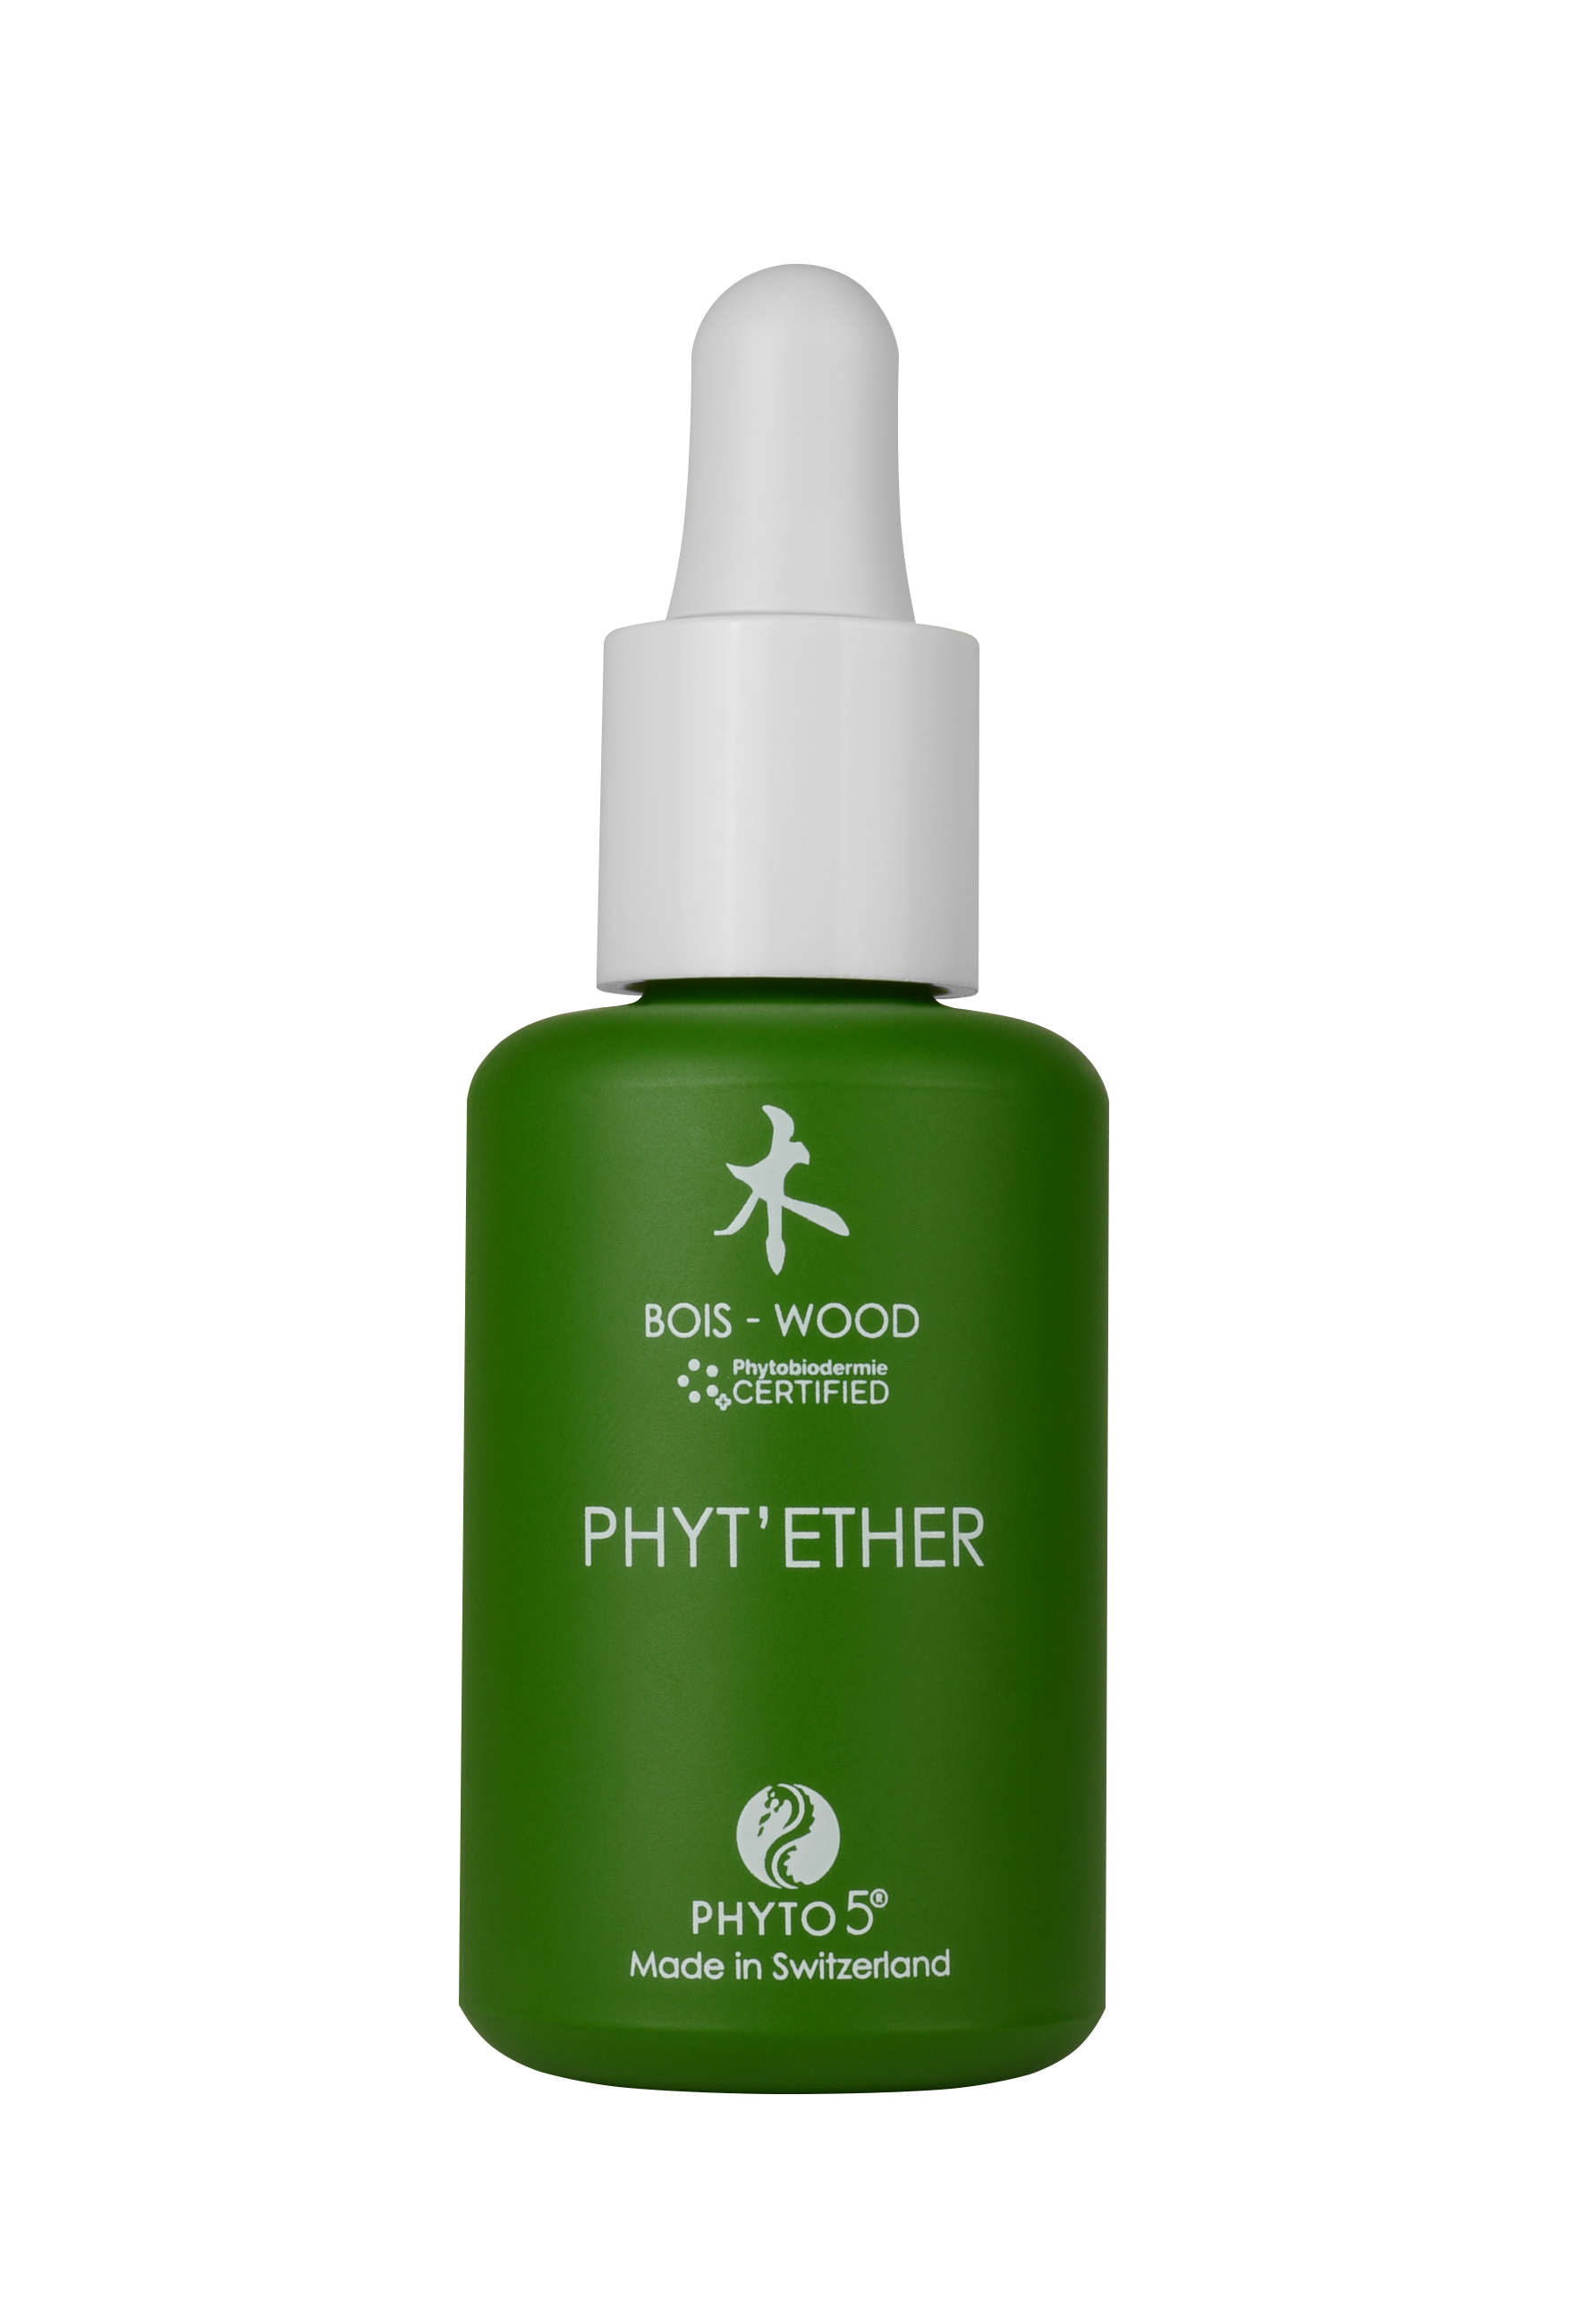 A 1 oz. bottle of Wood element Phyt'Ether serum for face and body